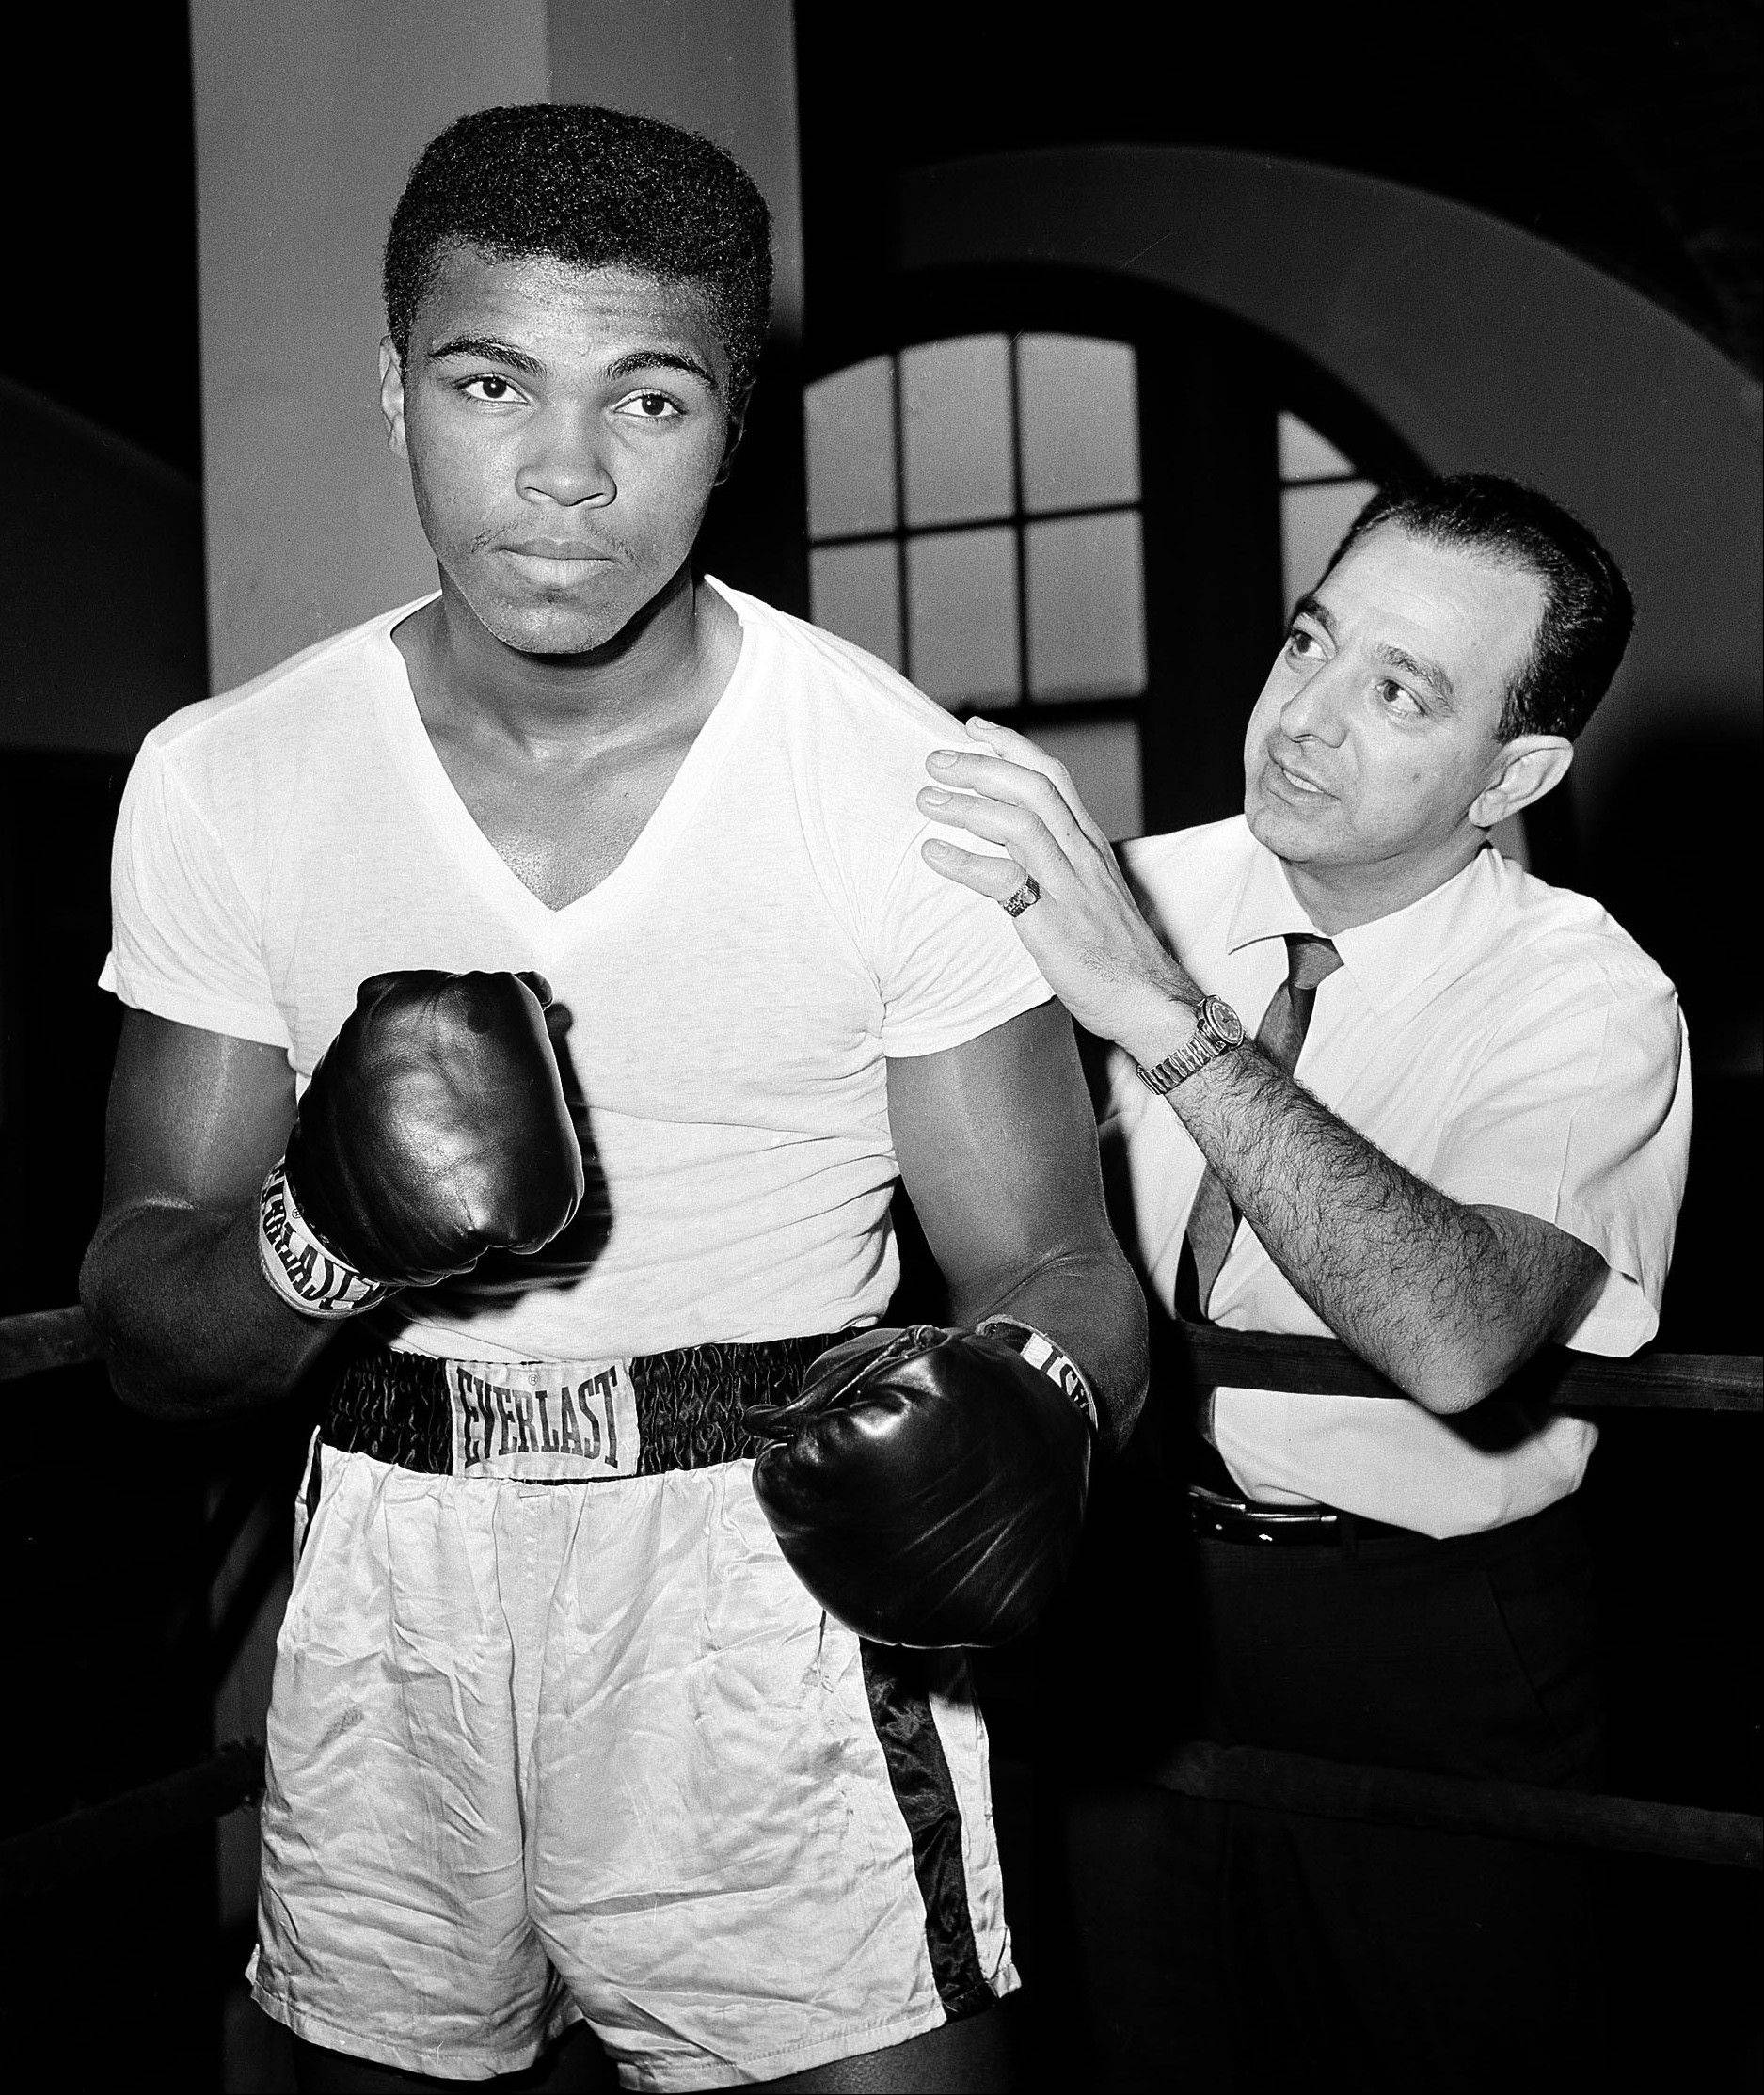 A young Muhammad Ali, left, stands with trainer Angelo Dundee at City Parks Gym in New York in 1962.